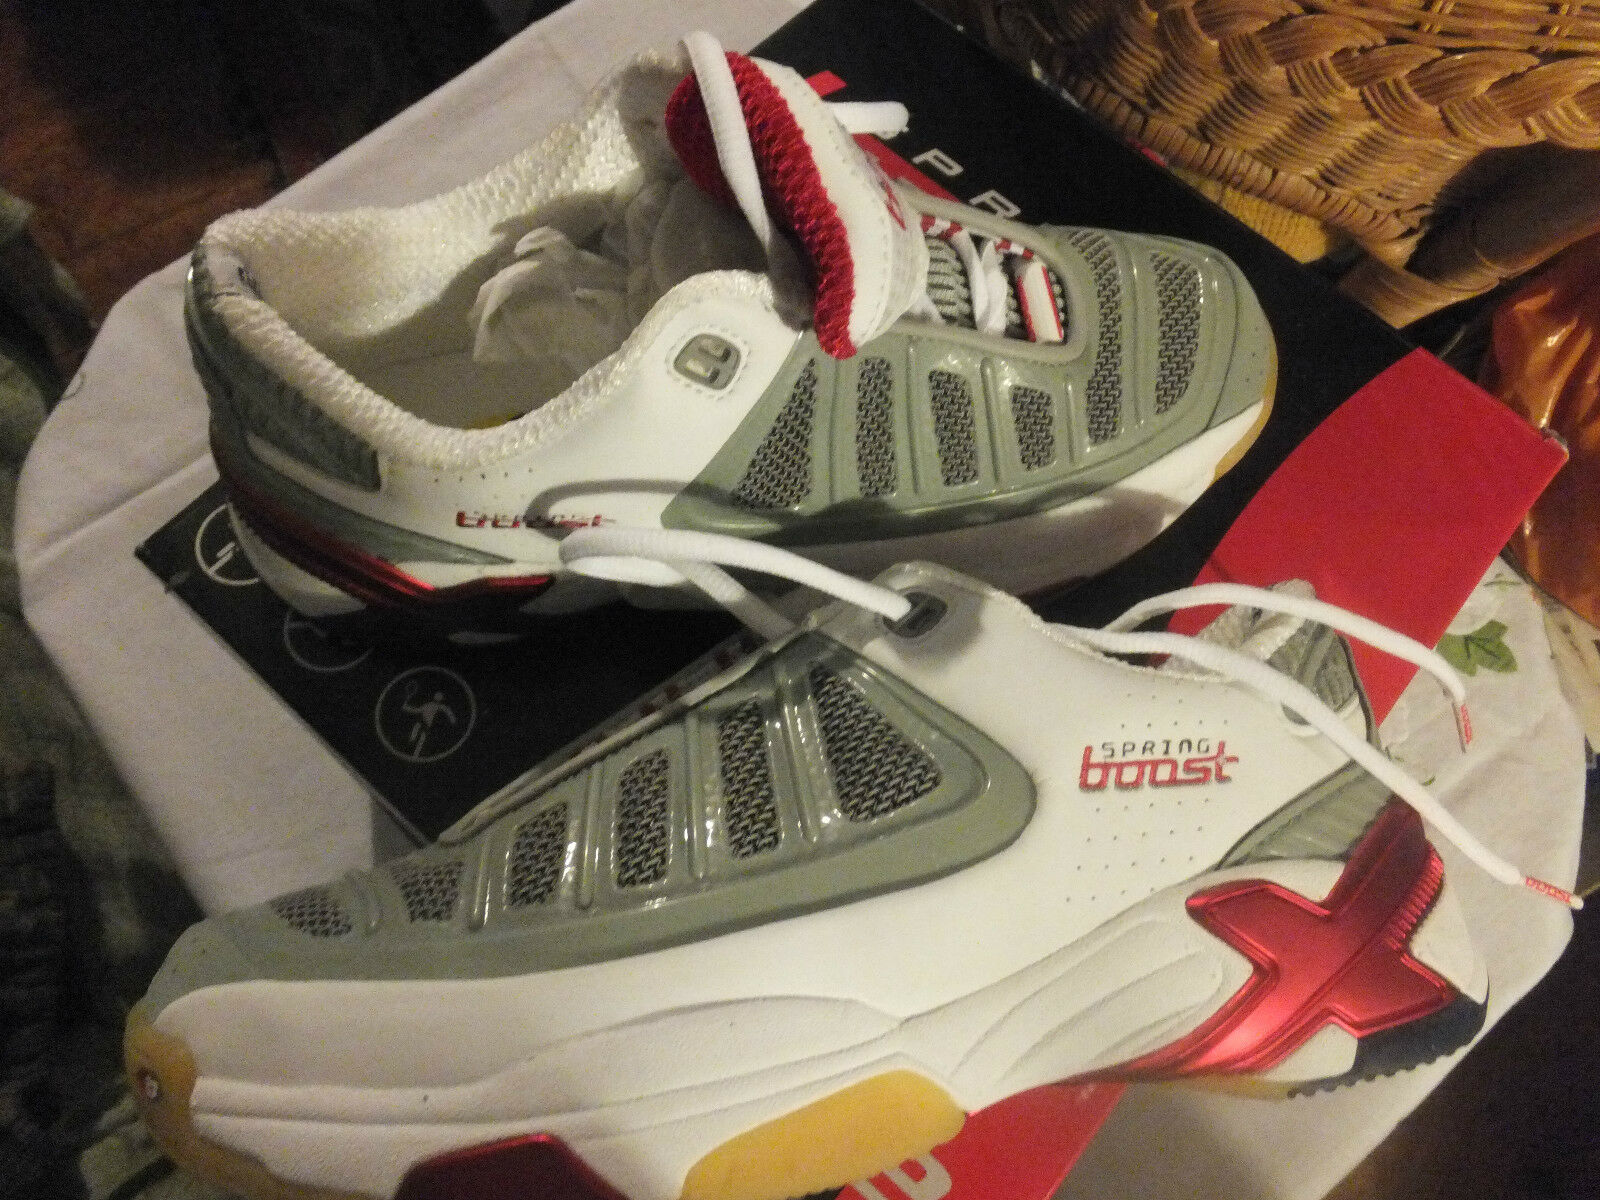 Sprint Booster B-Spike Baskets taille 6.5 40 US 9 Unisexe